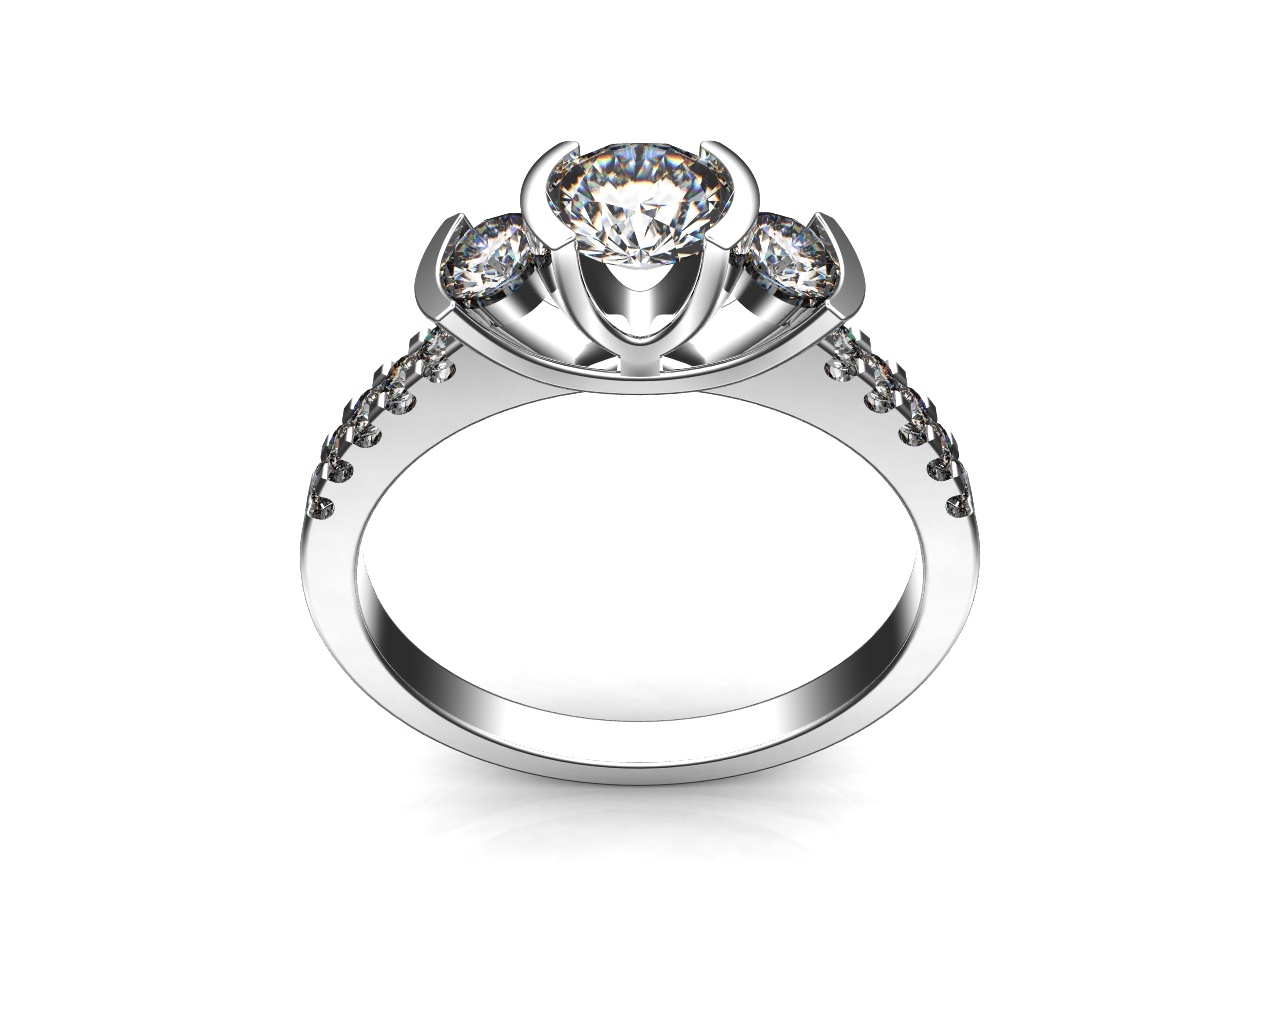 Round Brilliant Cut Diamond Trilogy Engagement Ring, Semi Bezel Tension Set Stones on a Cut Claw Band and Scooped Undersetting.